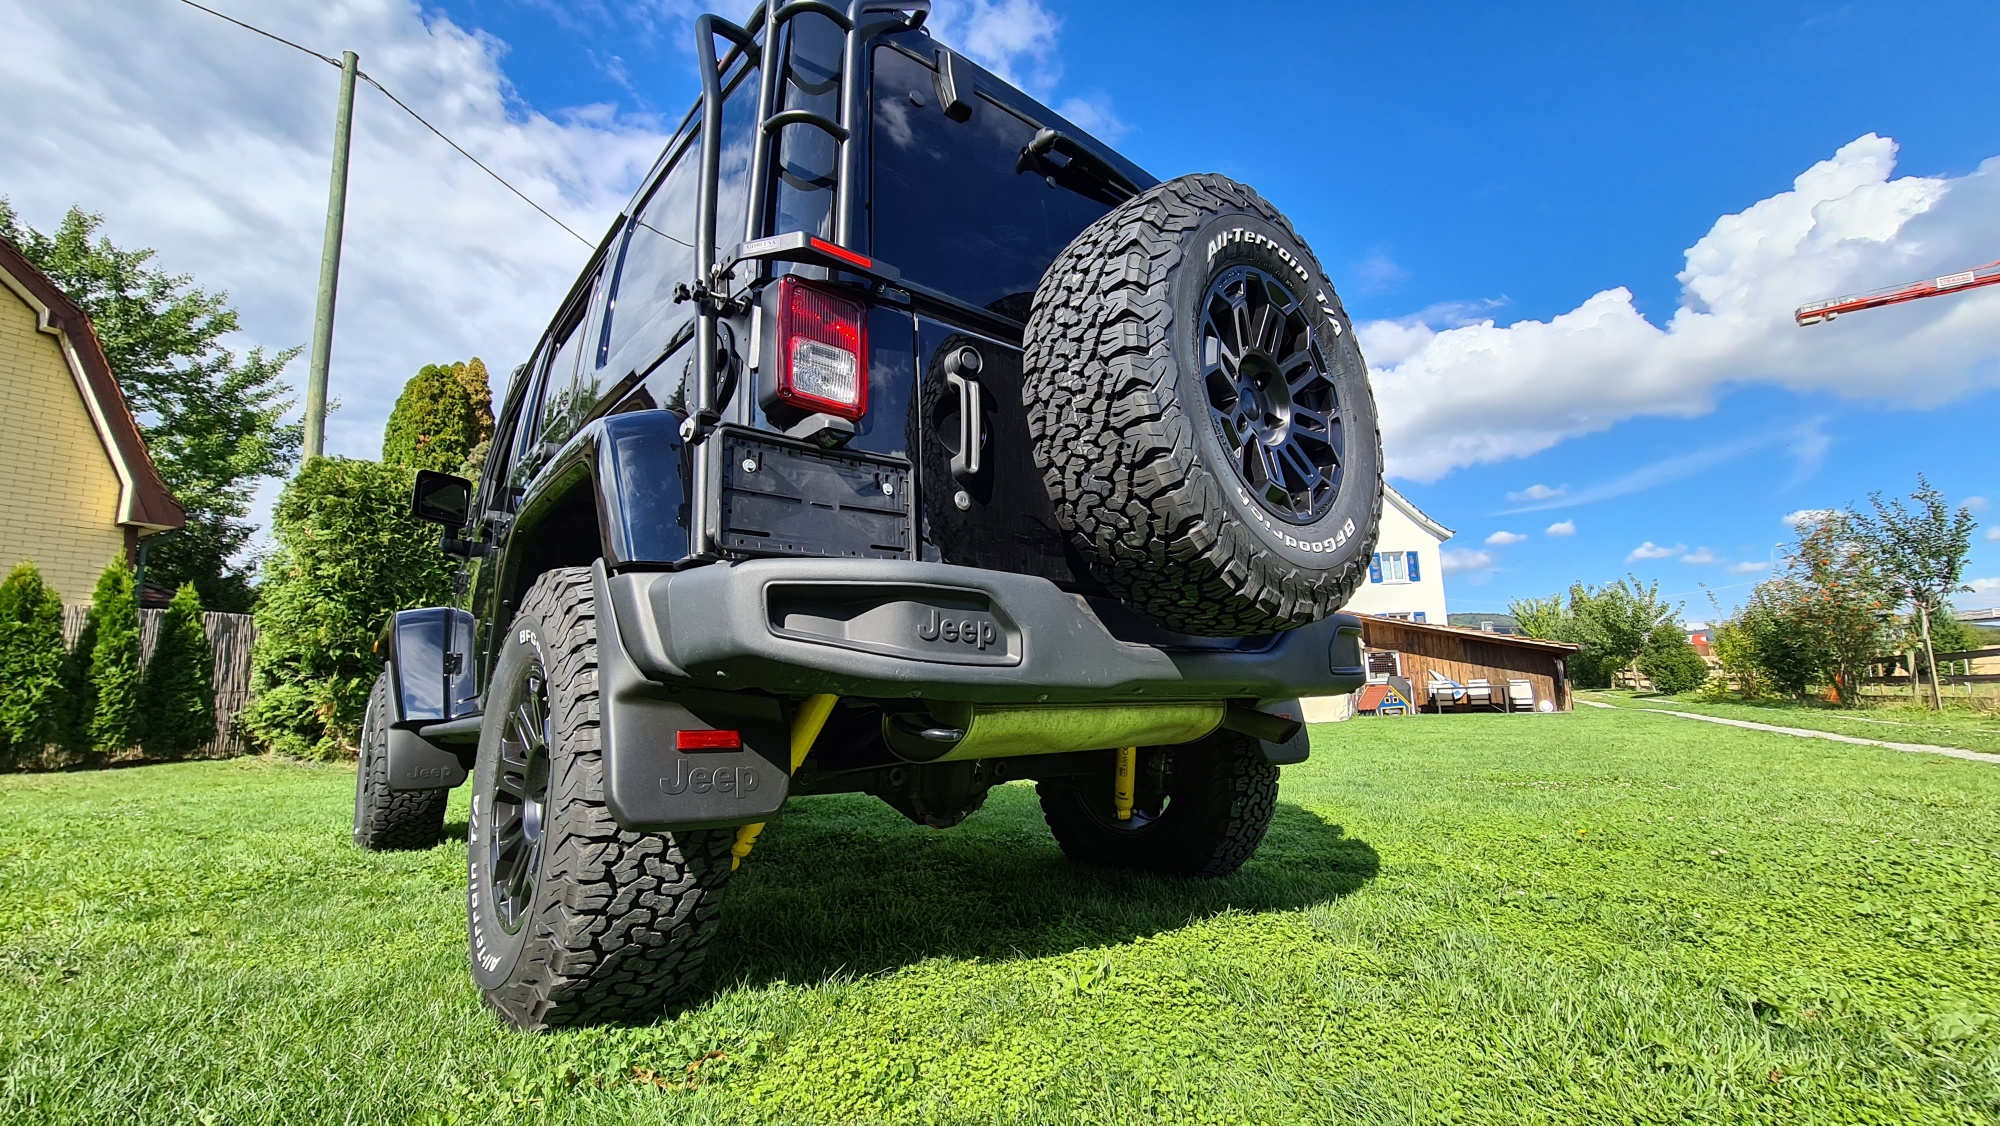 Umbau Wrangler JKU Golden Eagle